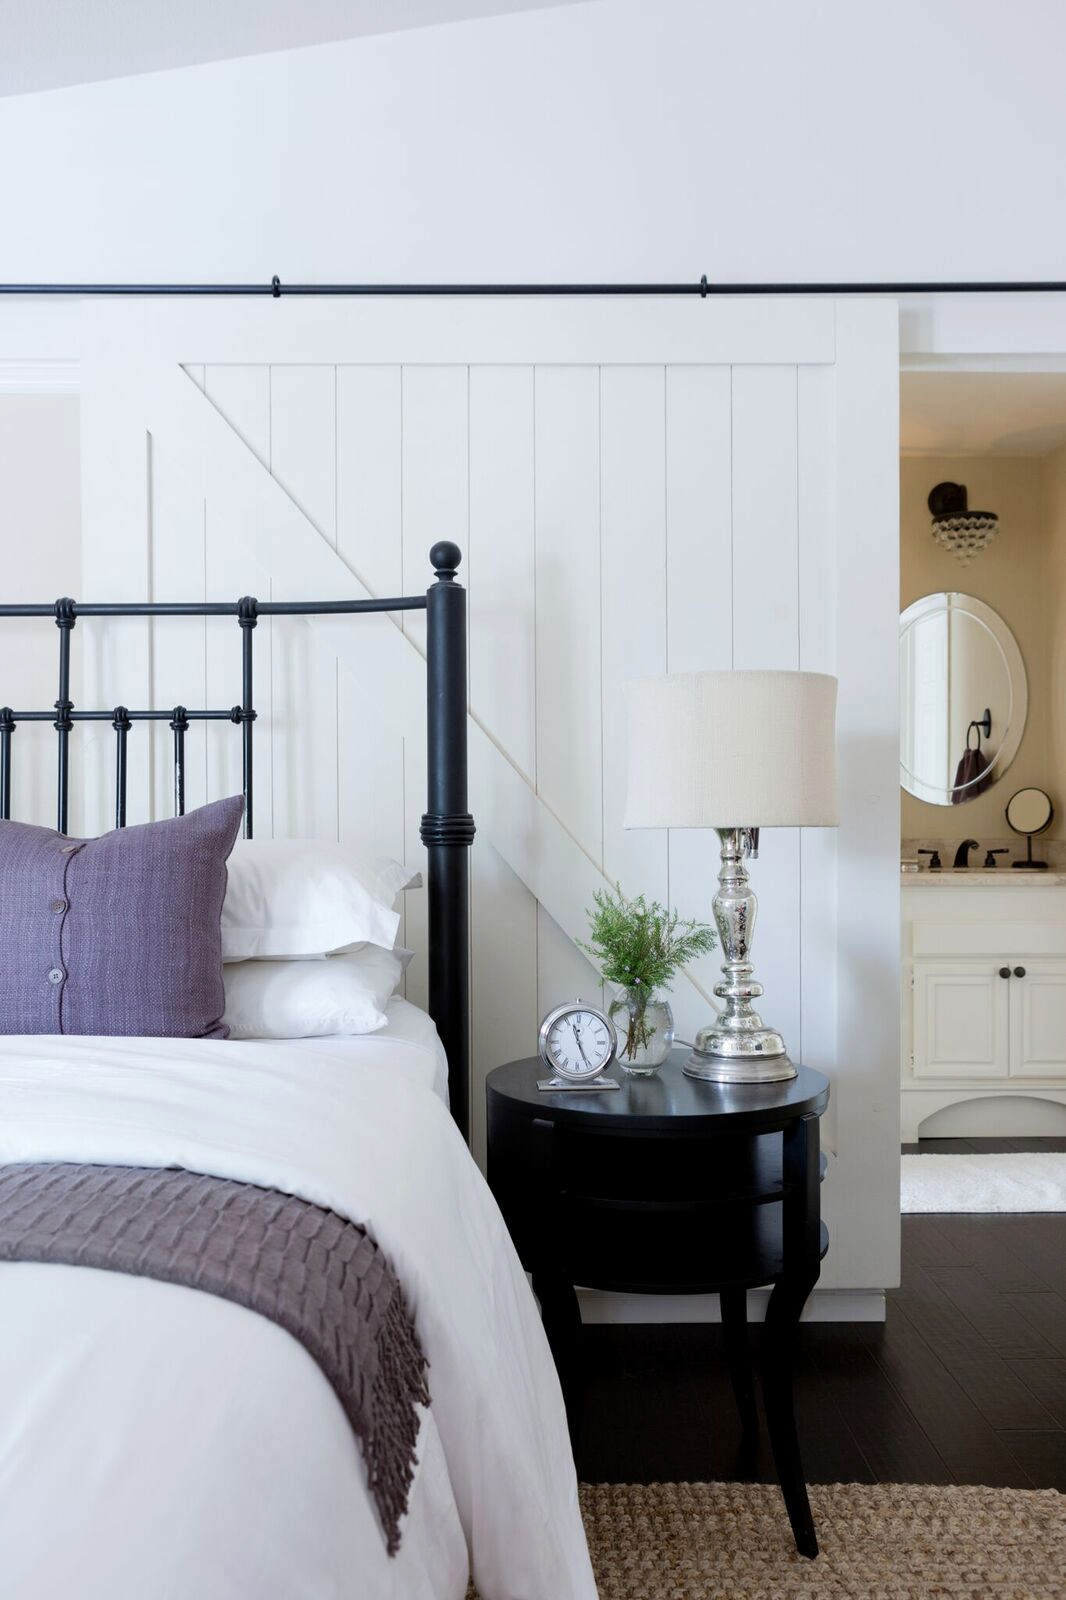 Bedroom Ensuite with Barn Door Headboard